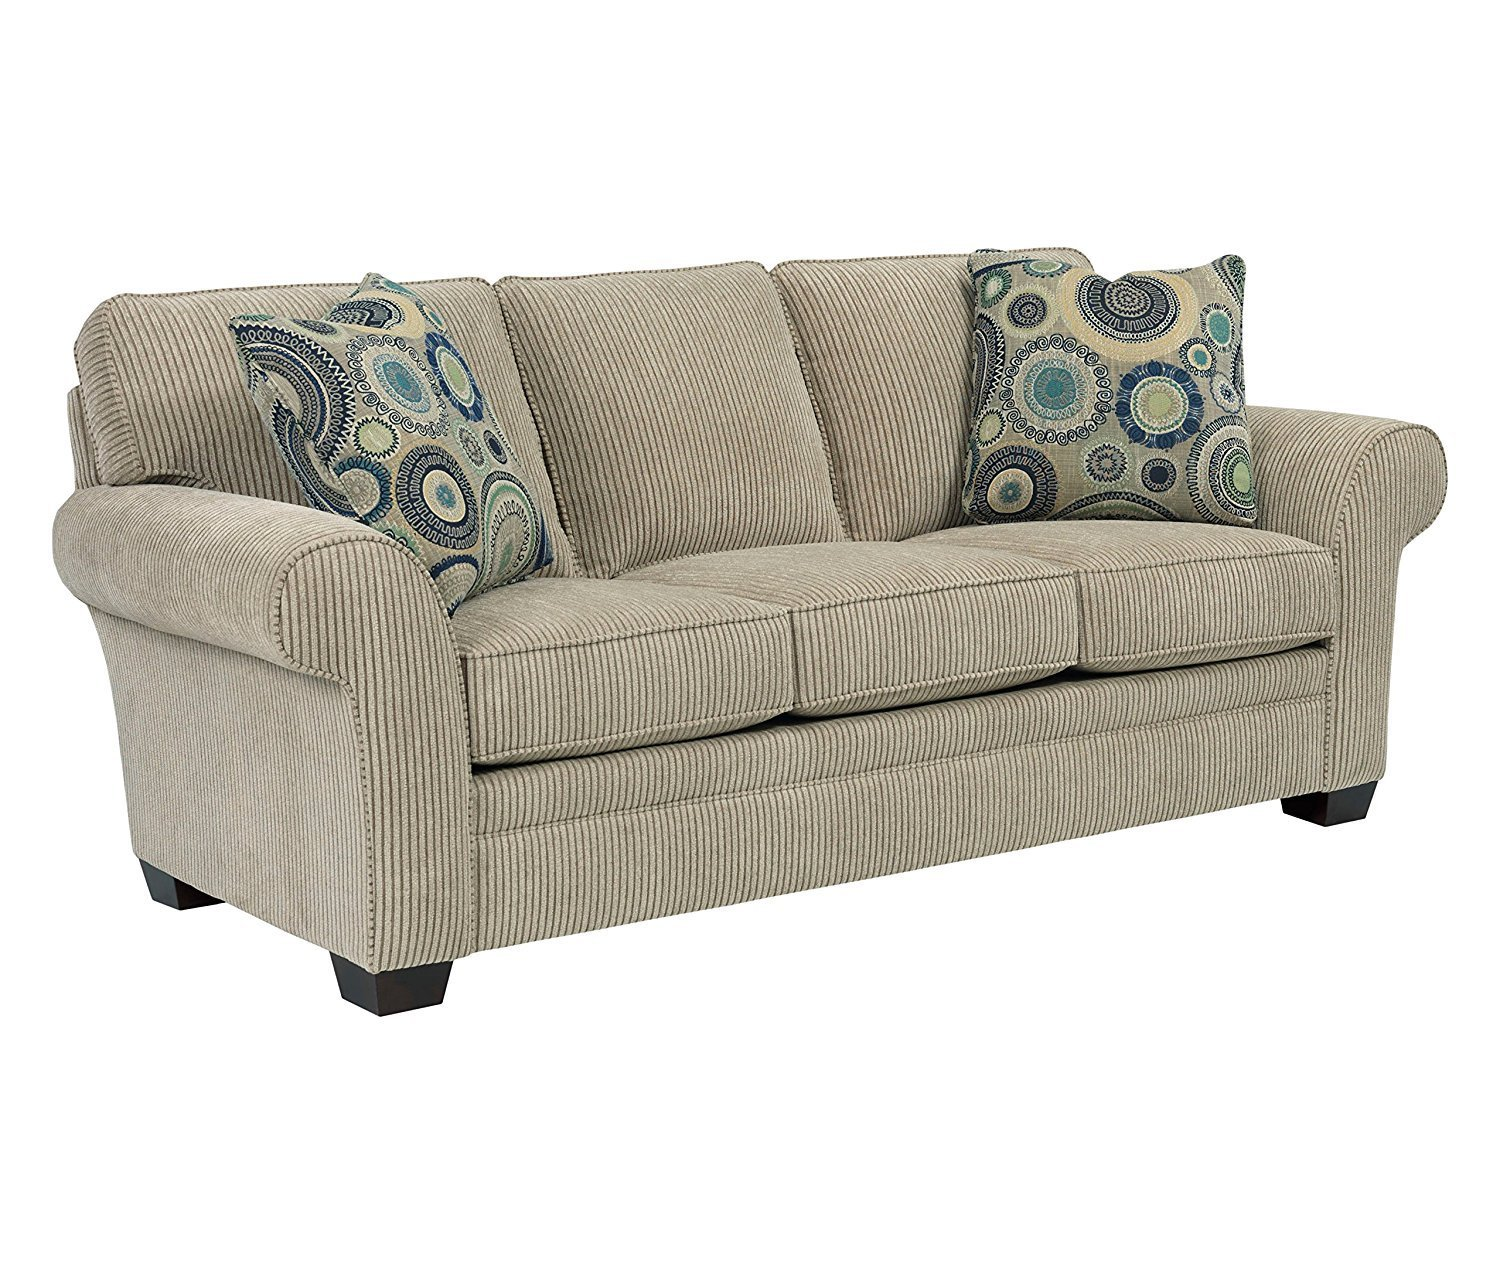 Broyhill Zachary Sofa Off White Home Furniture Design